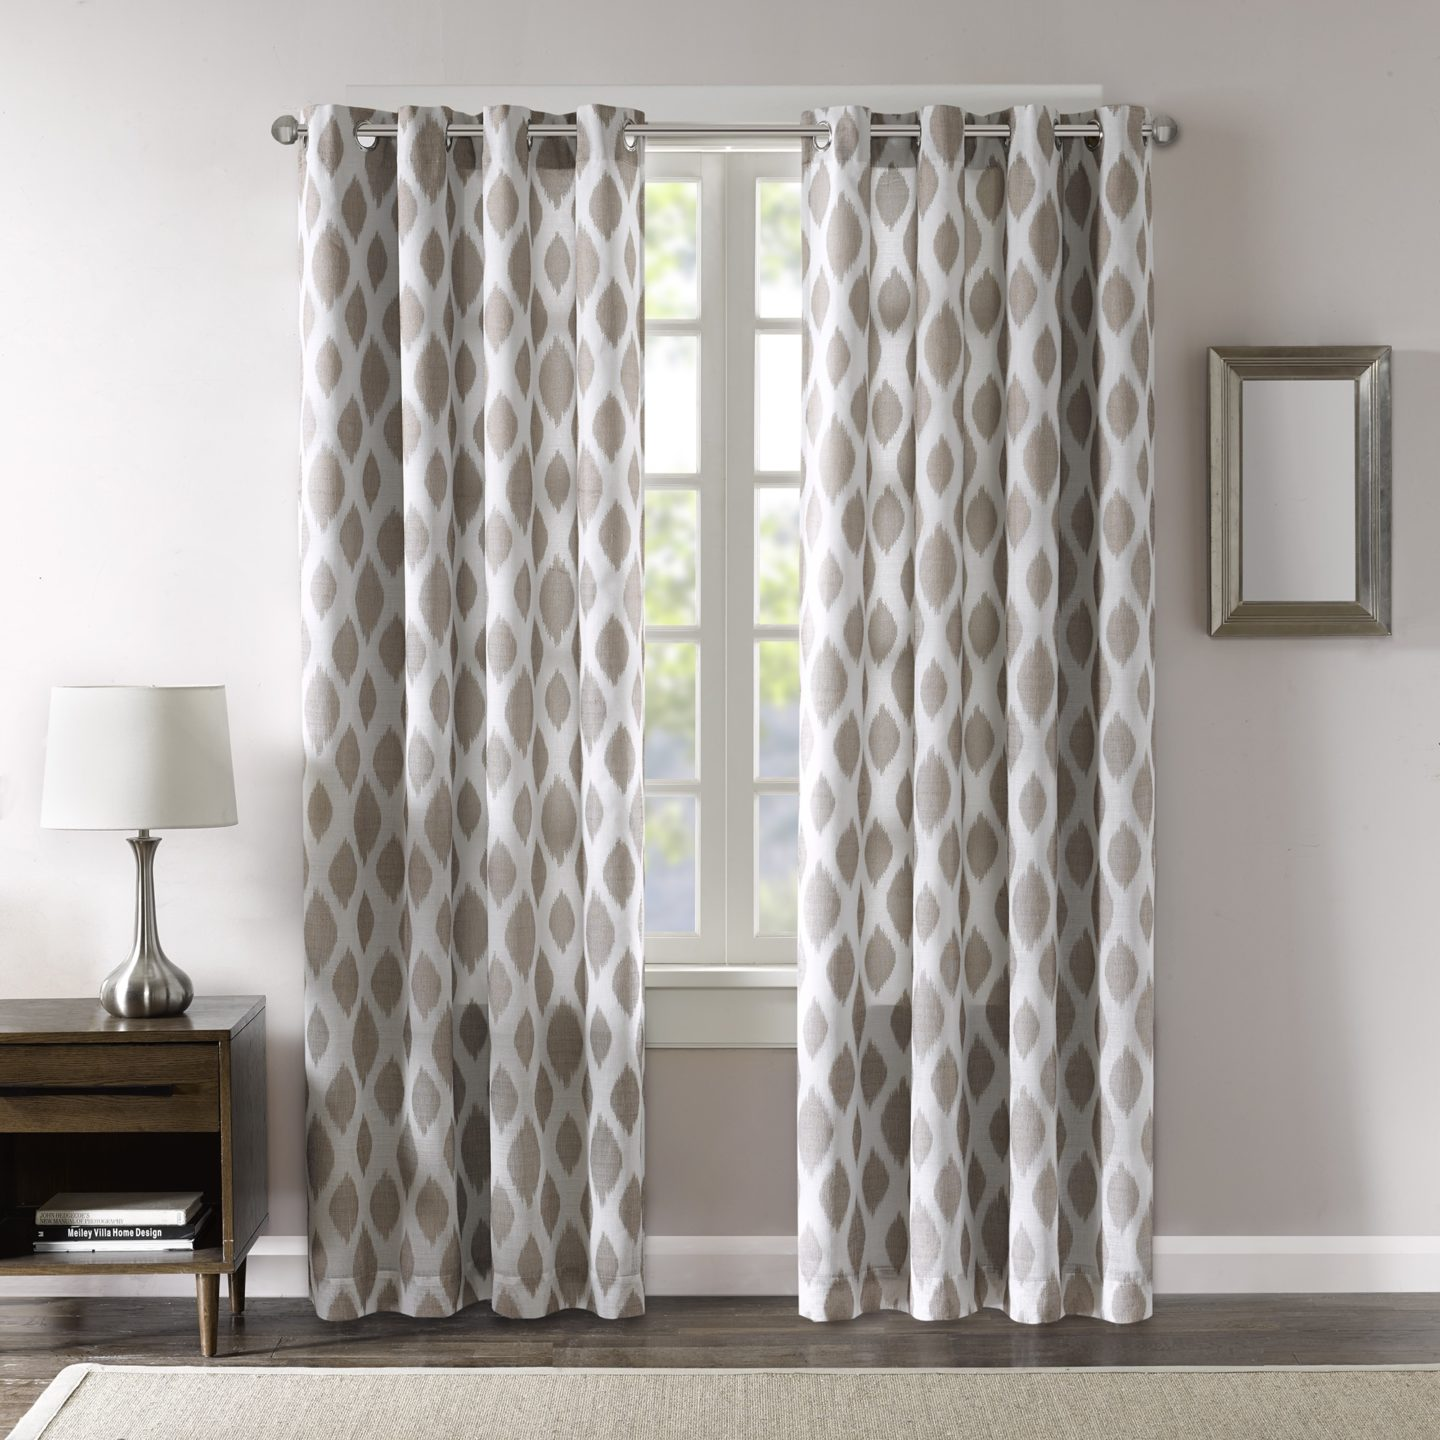 Blackout Curtains for Sale | Cheap Blackout Curtains | Cheap Curtains on Sale